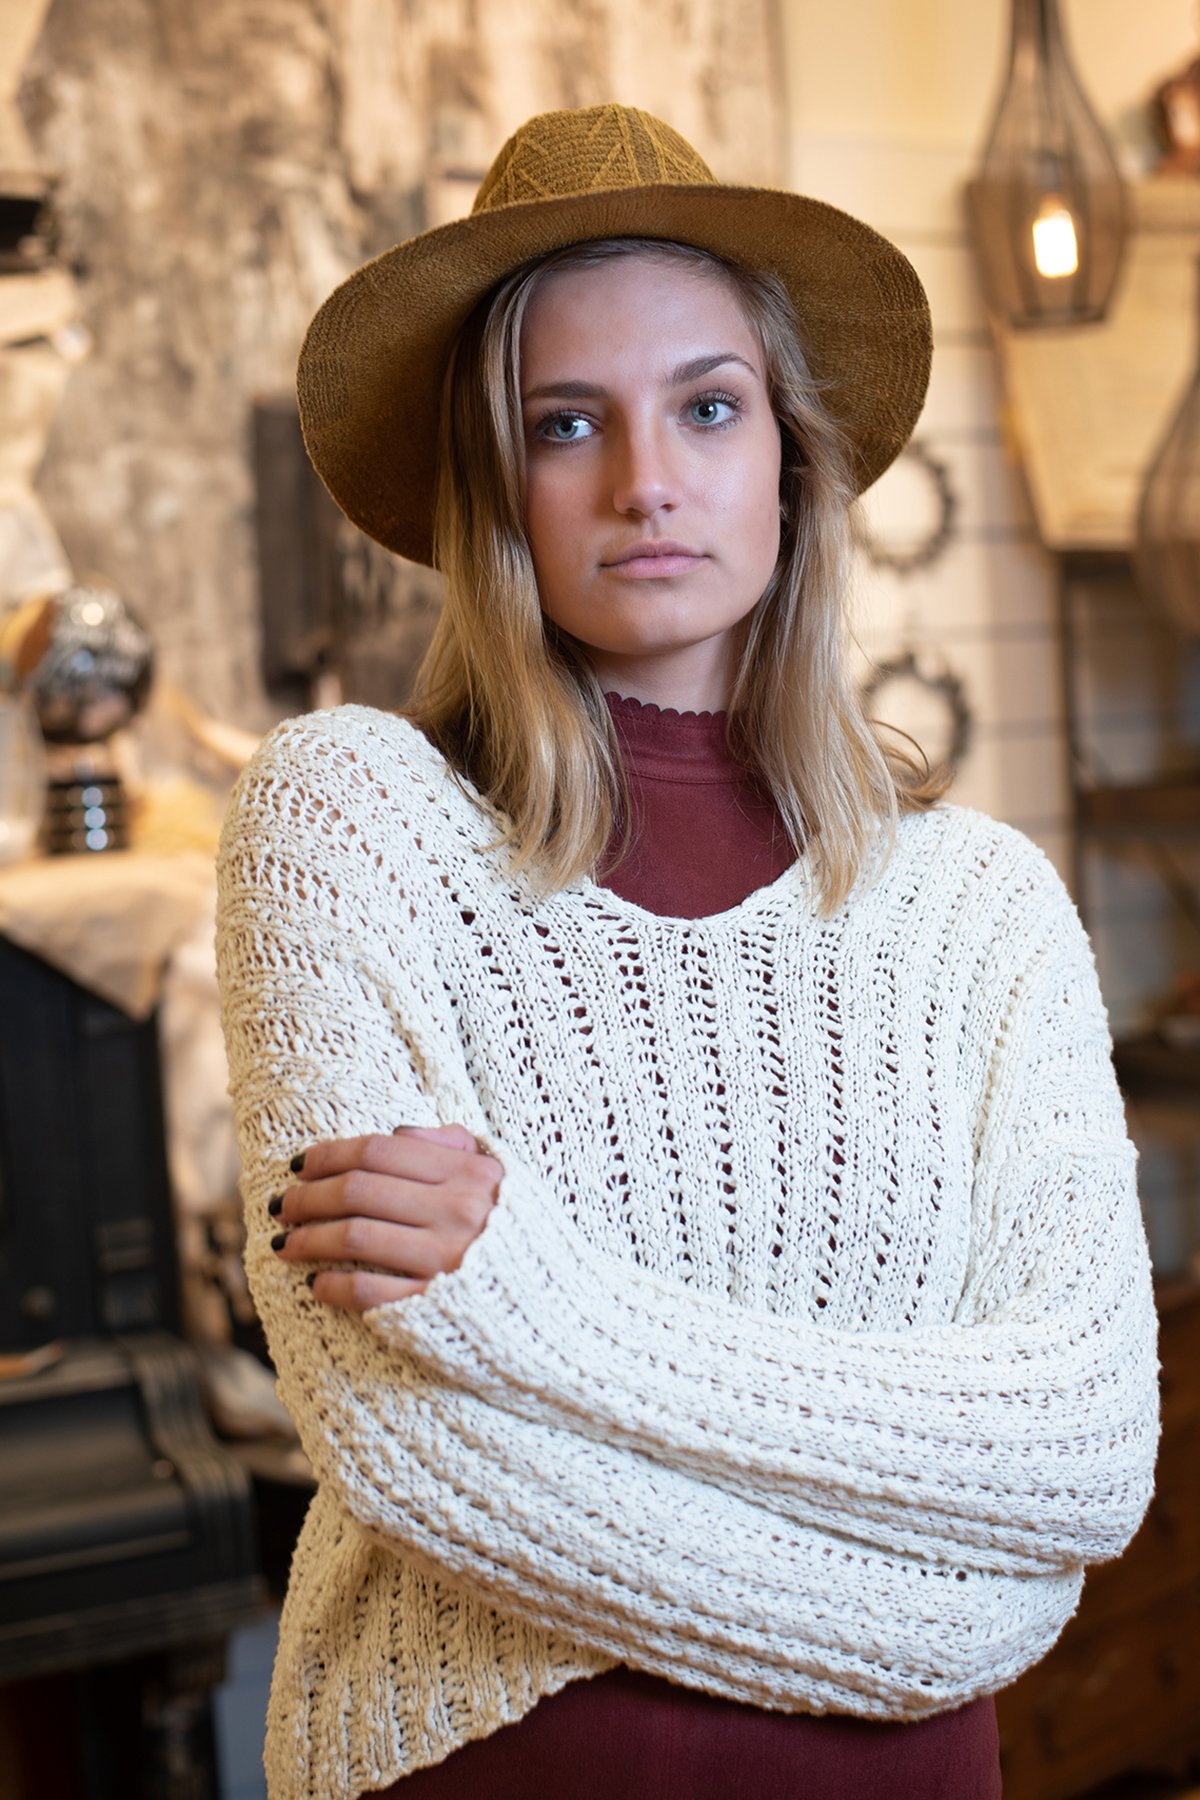 girl wearing white sweater and brown hat